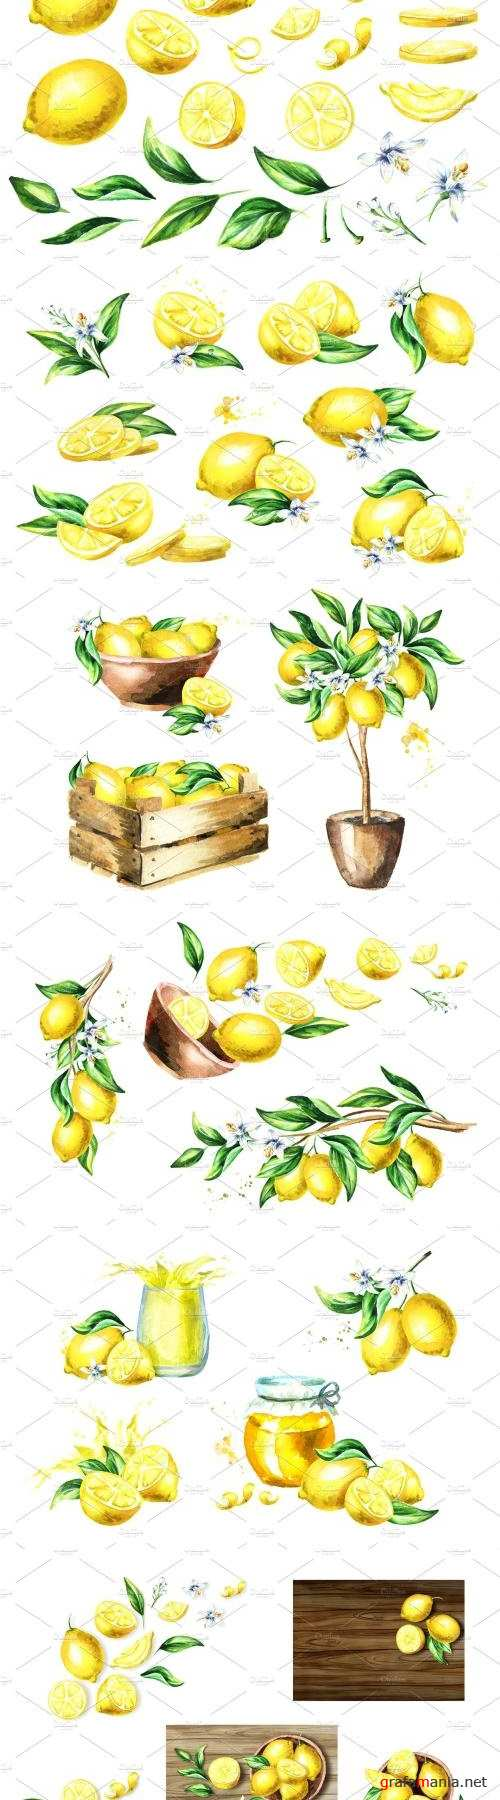 Fresh Lemon. Watercolor Collection - 2182396